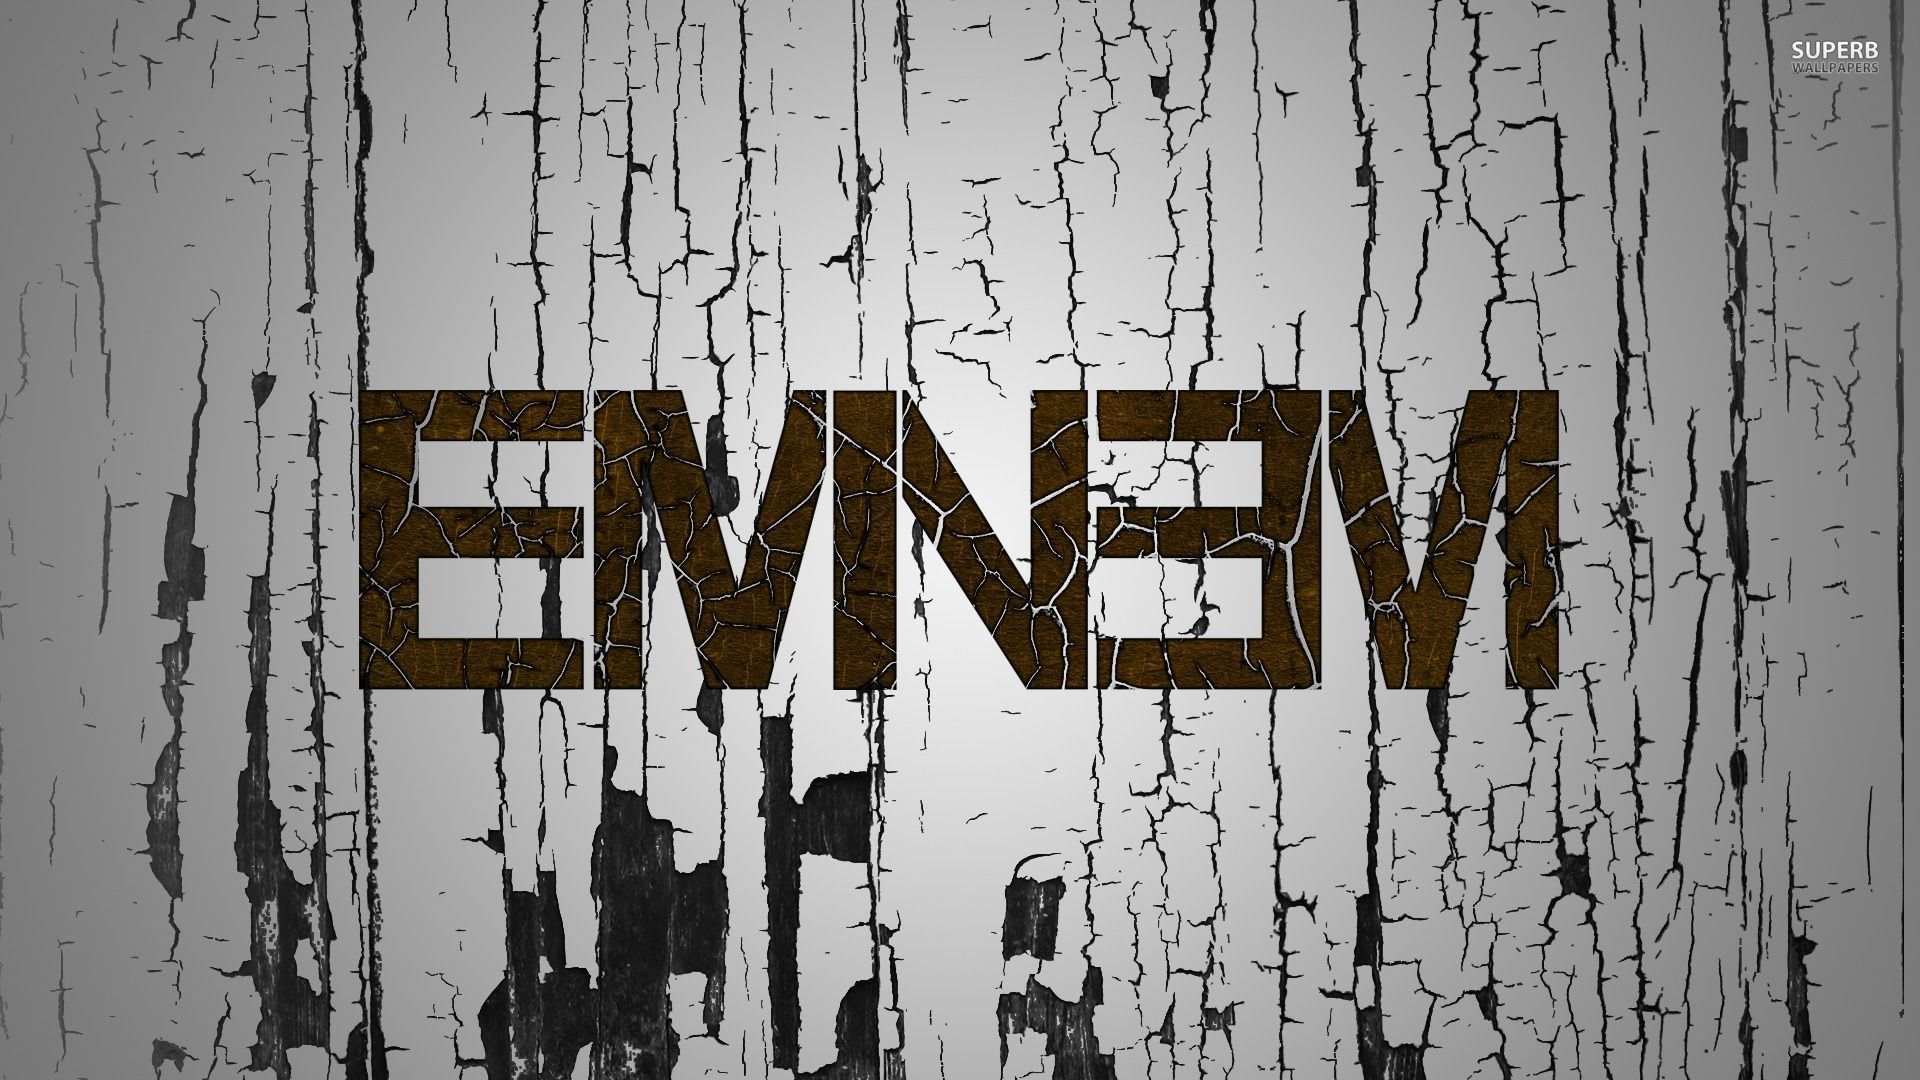 eminem hd wallpapers for iphone 6